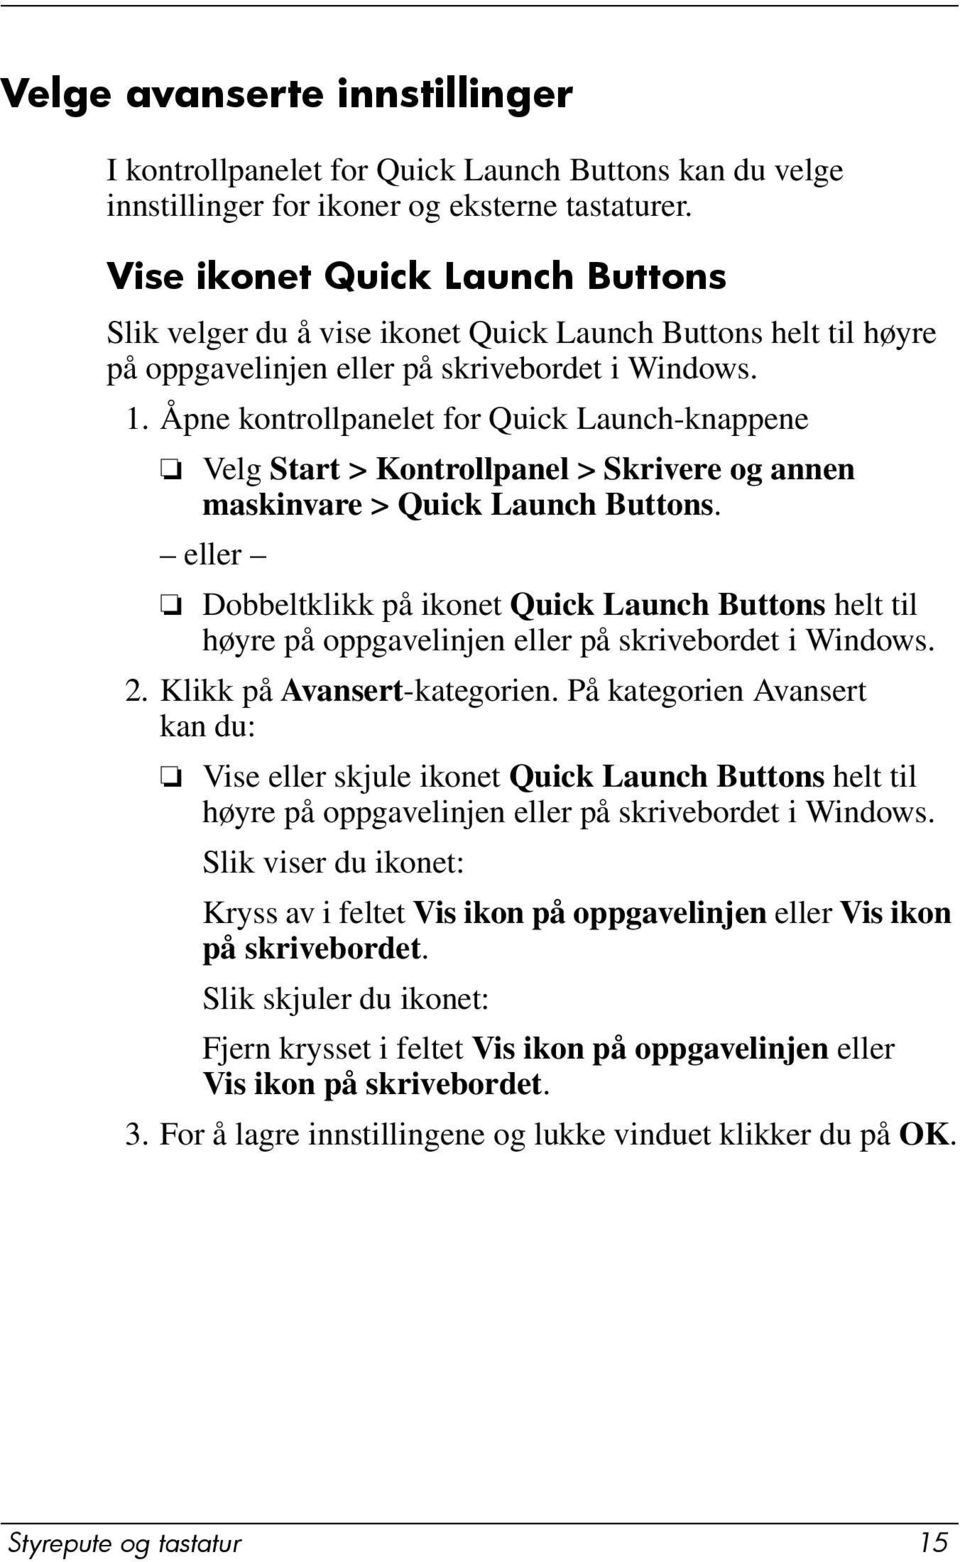 Åpne kontrollpanelet for Quick Launch-knappene Velg Start > Kontrollpanel > Skrivere og annen maskinvare > Quick Launch Buttons.